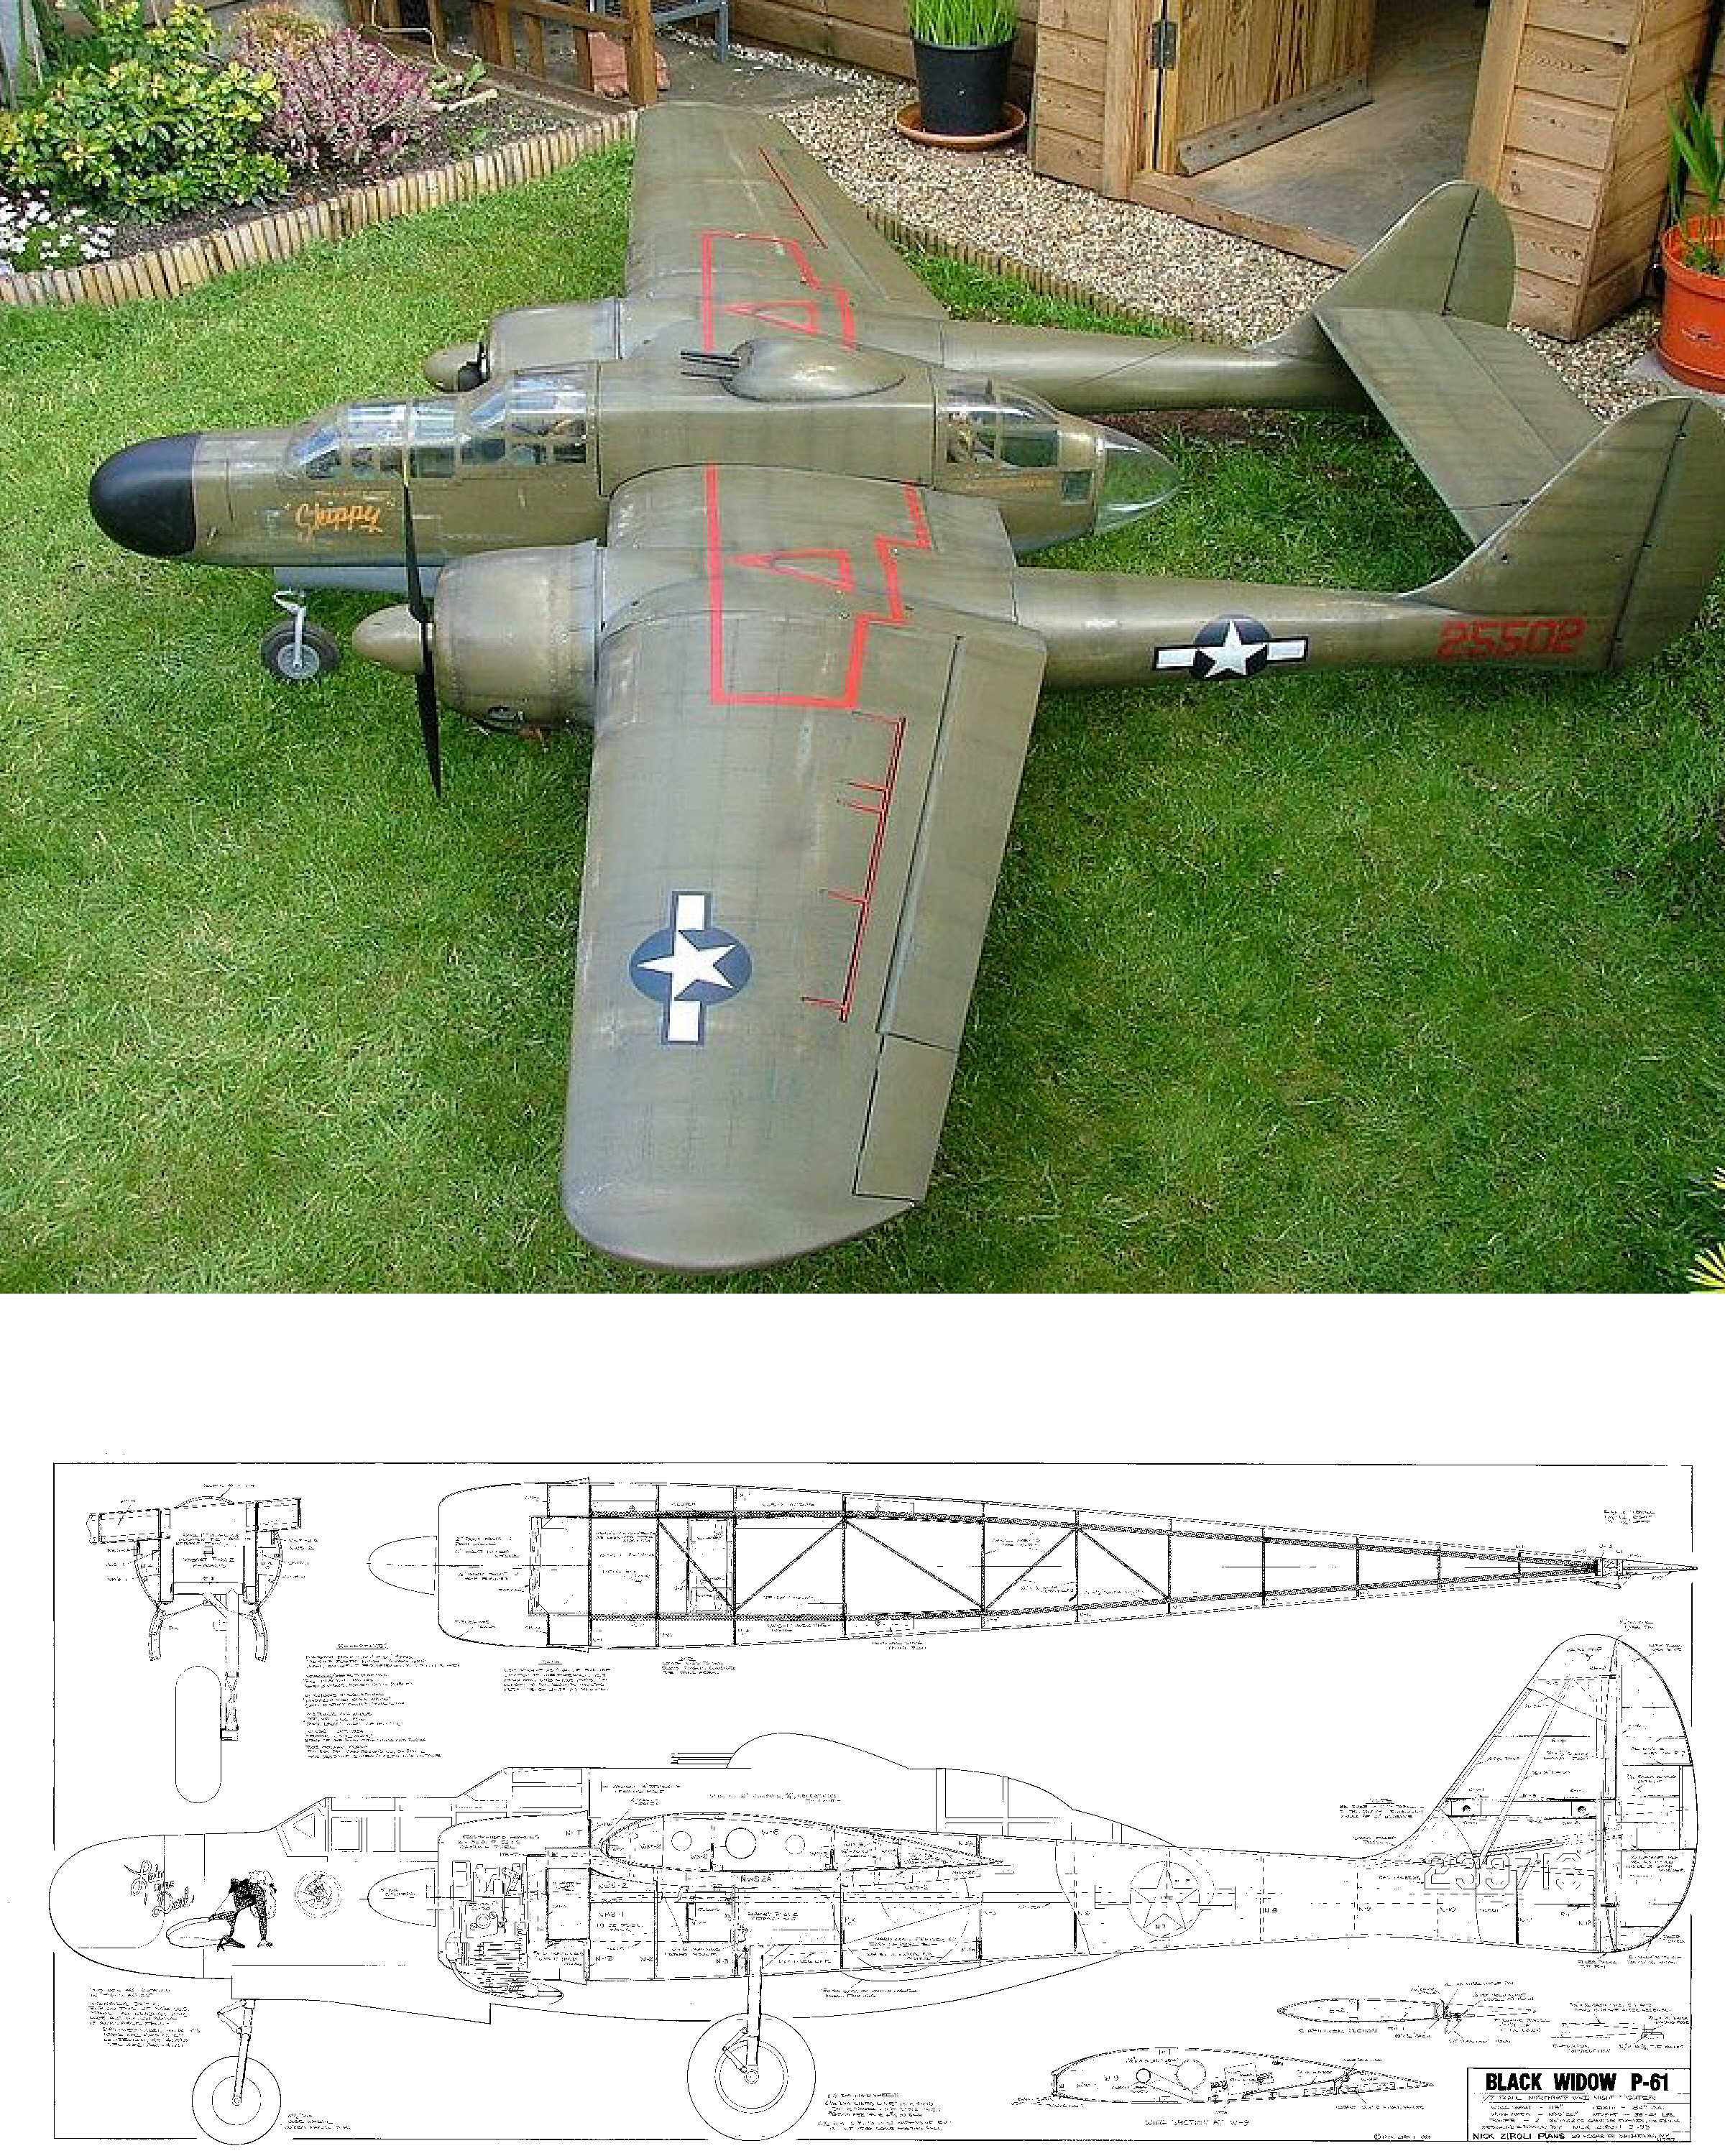 P-61 Black Widow Plan